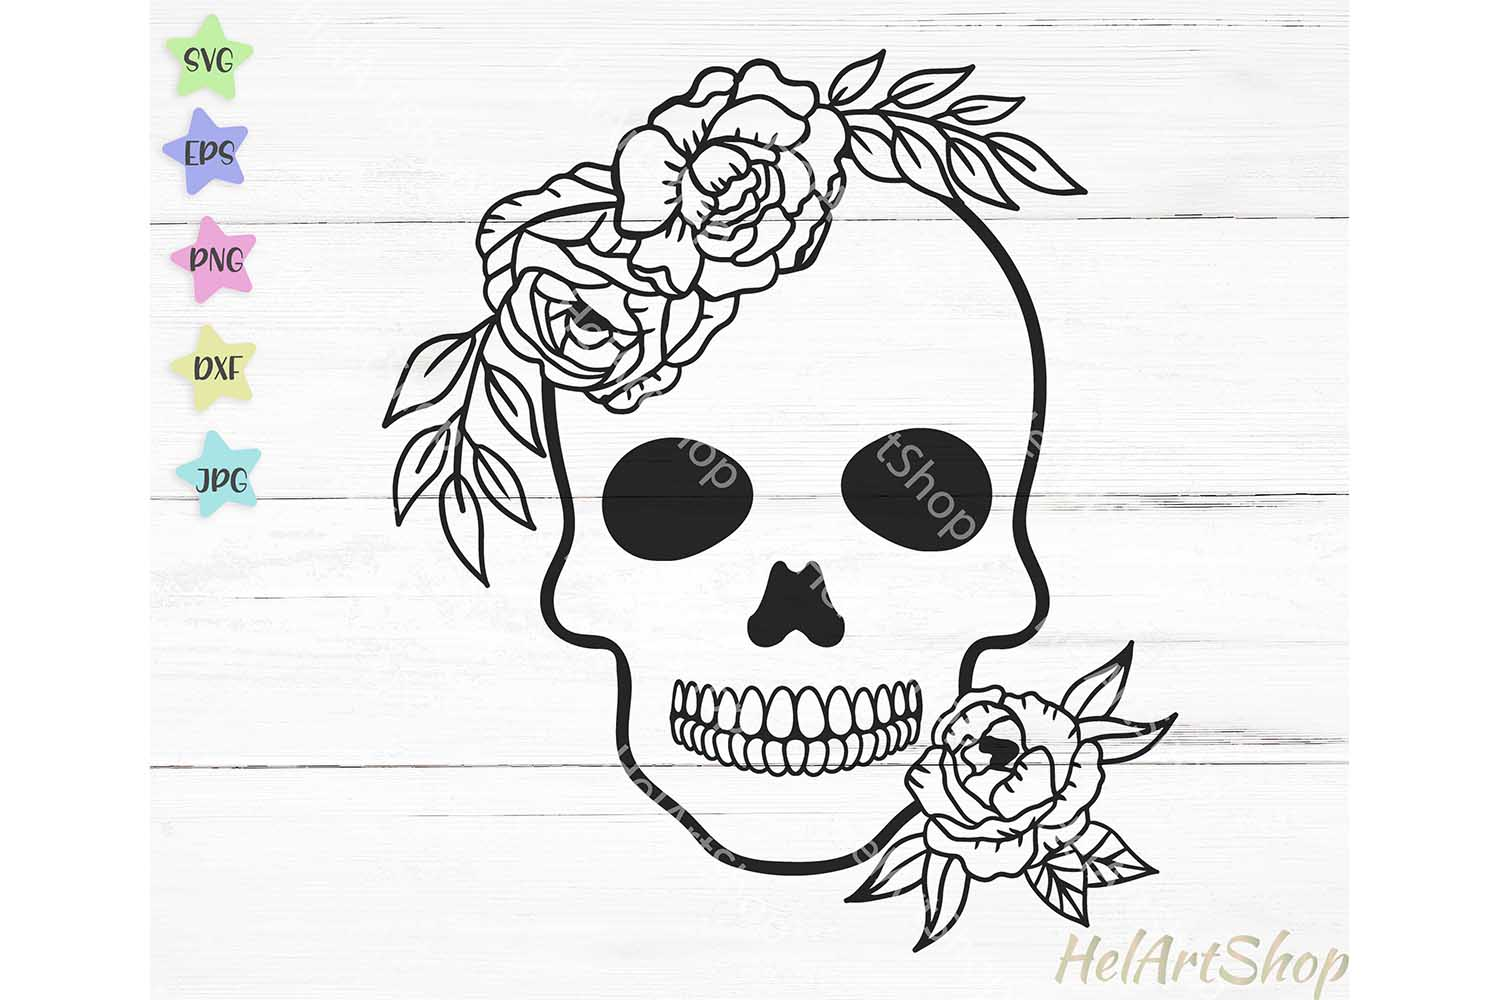 Download Free Floral Skull Grafik Von Helartshop Creative Fabrica for Cricut Explore, Silhouette and other cutting machines.